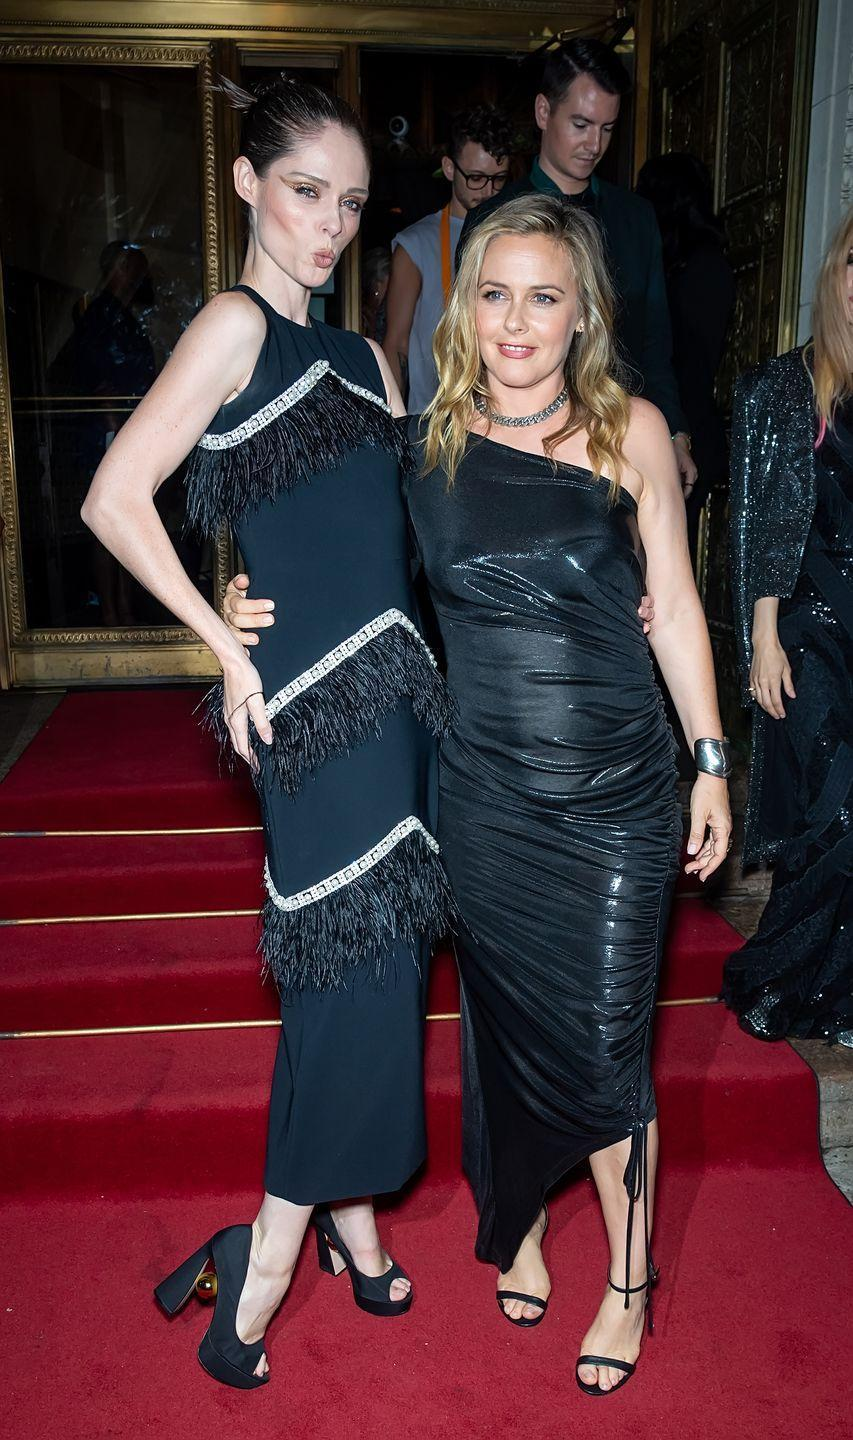 <p>Coco Rocha and Alicia Silverstone are seen leaving Christian Siriano's Spring 2022 show during New York Fashion Week.</p>